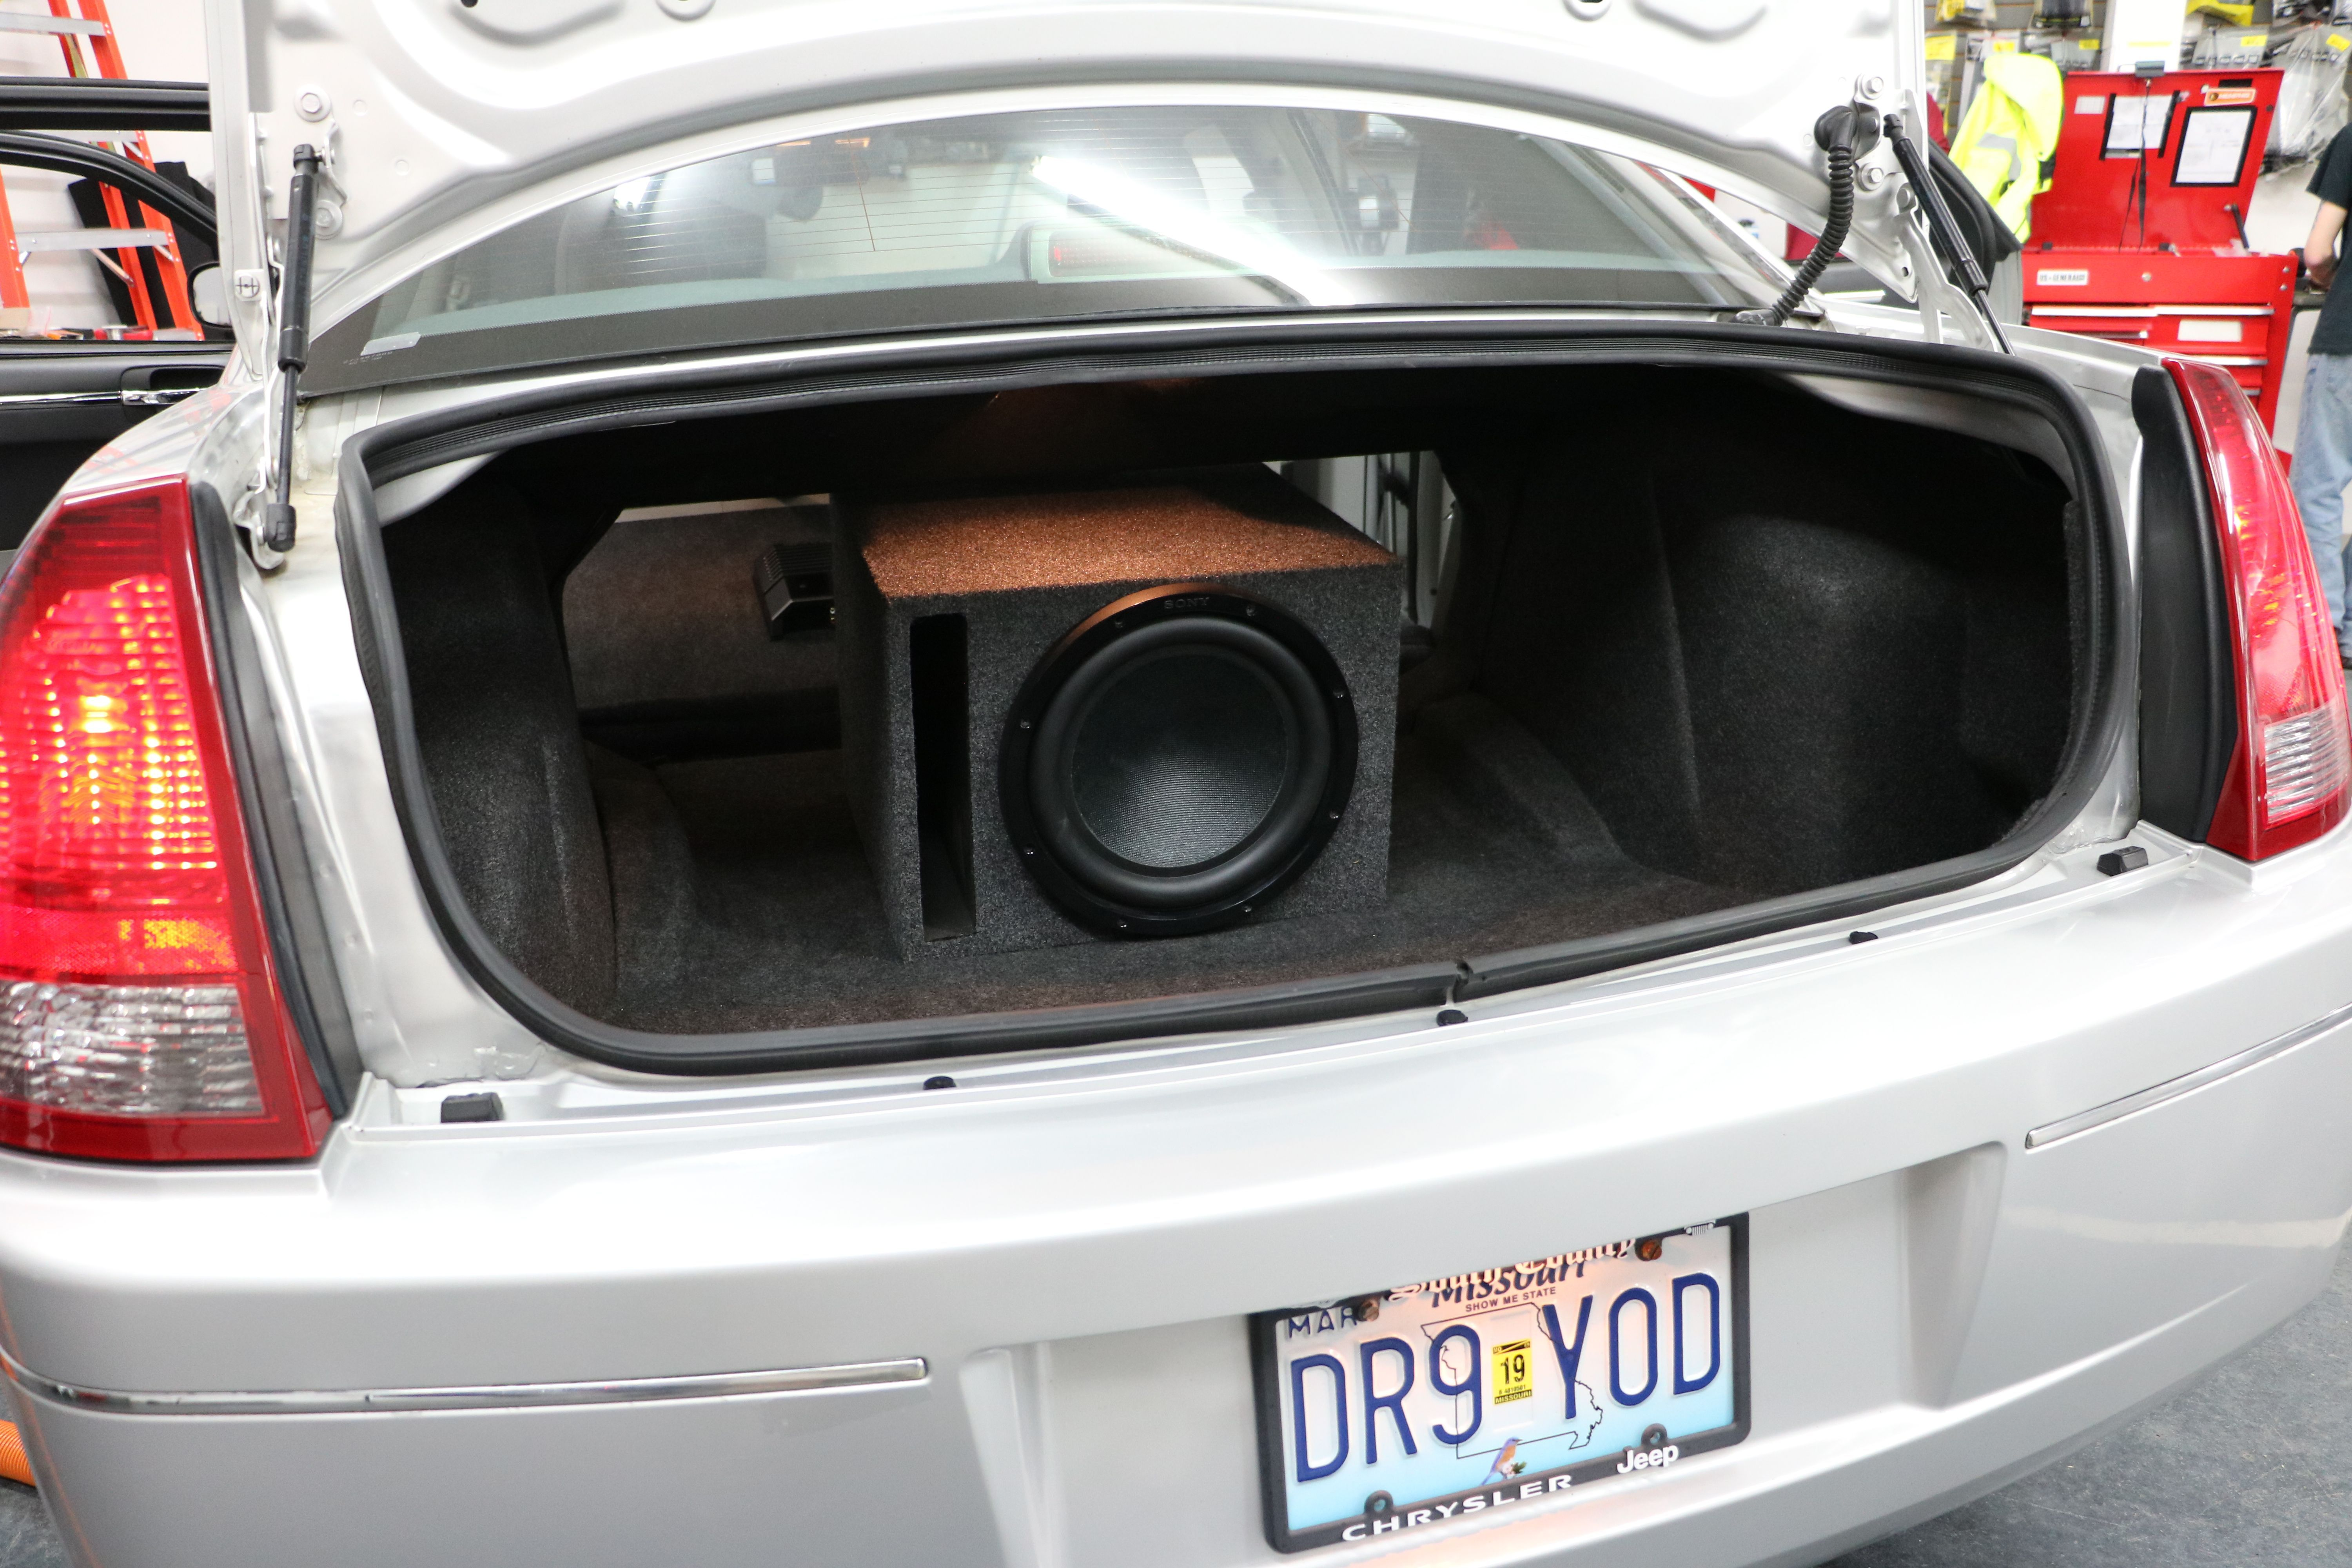 Come to #SoundPerformance for all of your car audio need. You want people  who know what they're doing and will give you the best possible outcome!